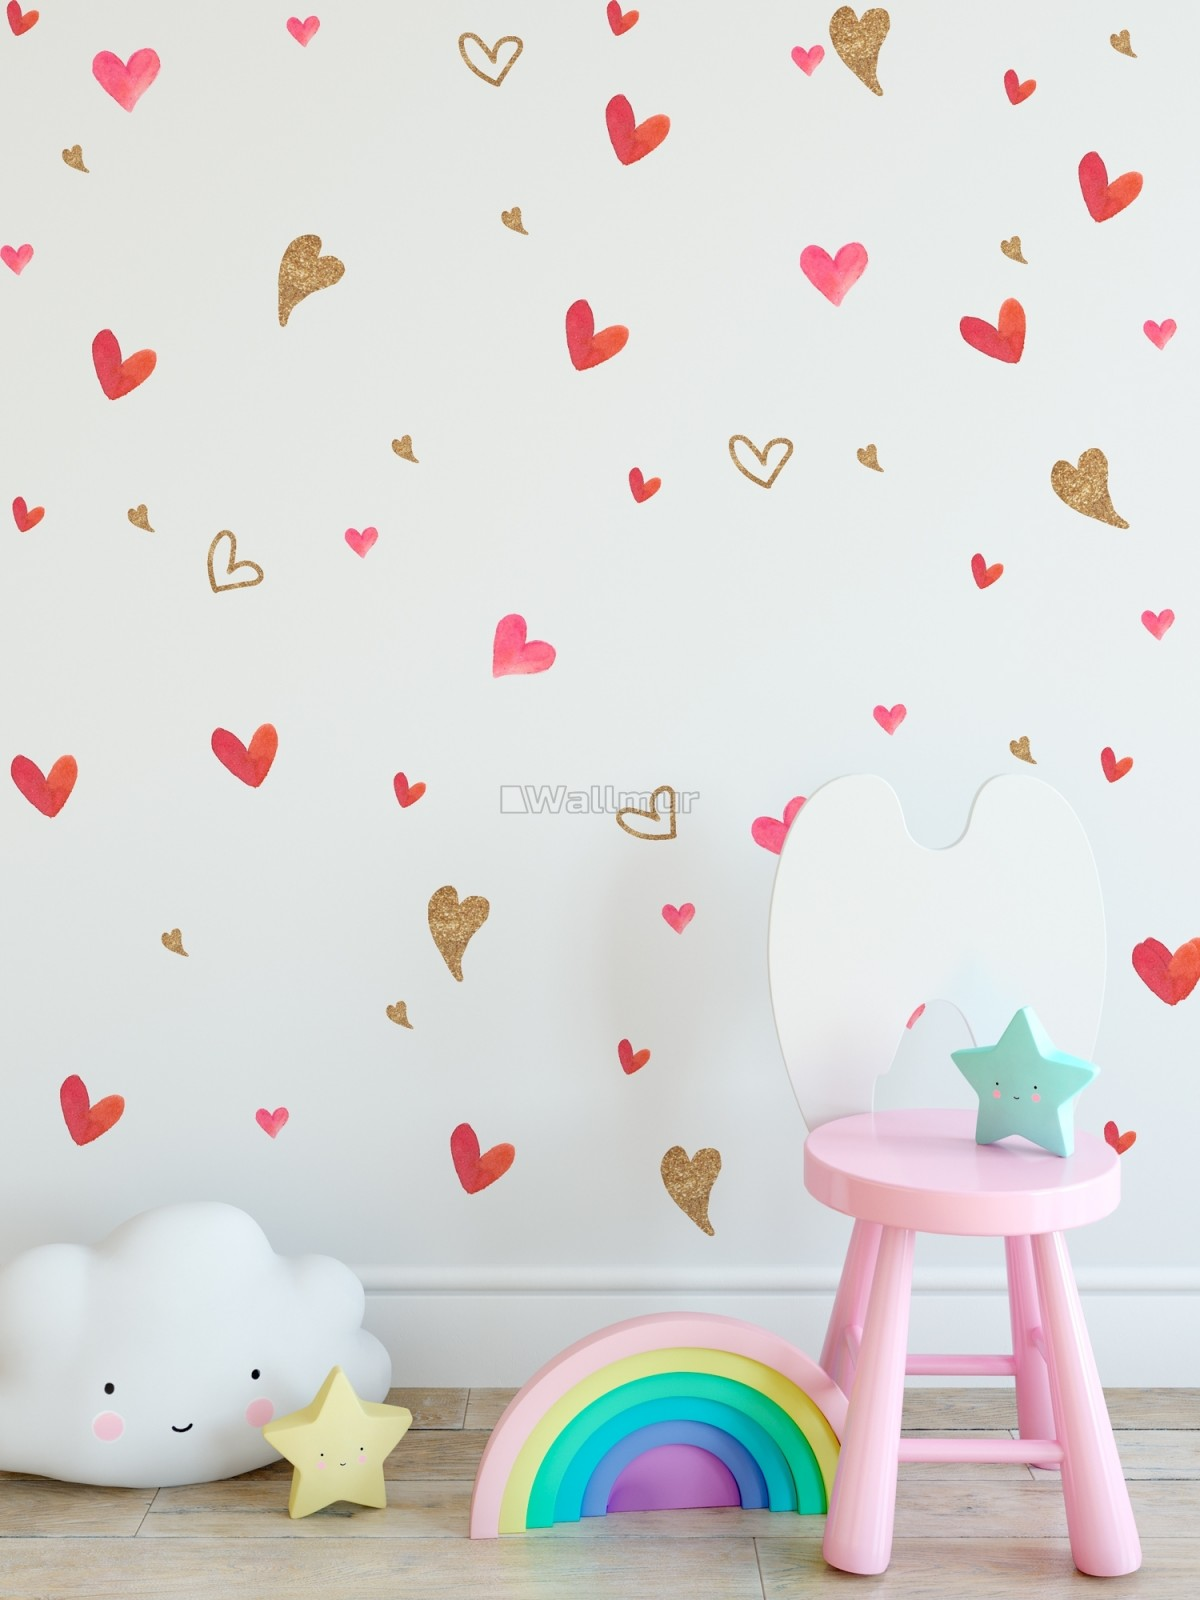 Cute Watercolor Hearts Wall Decal Sticker